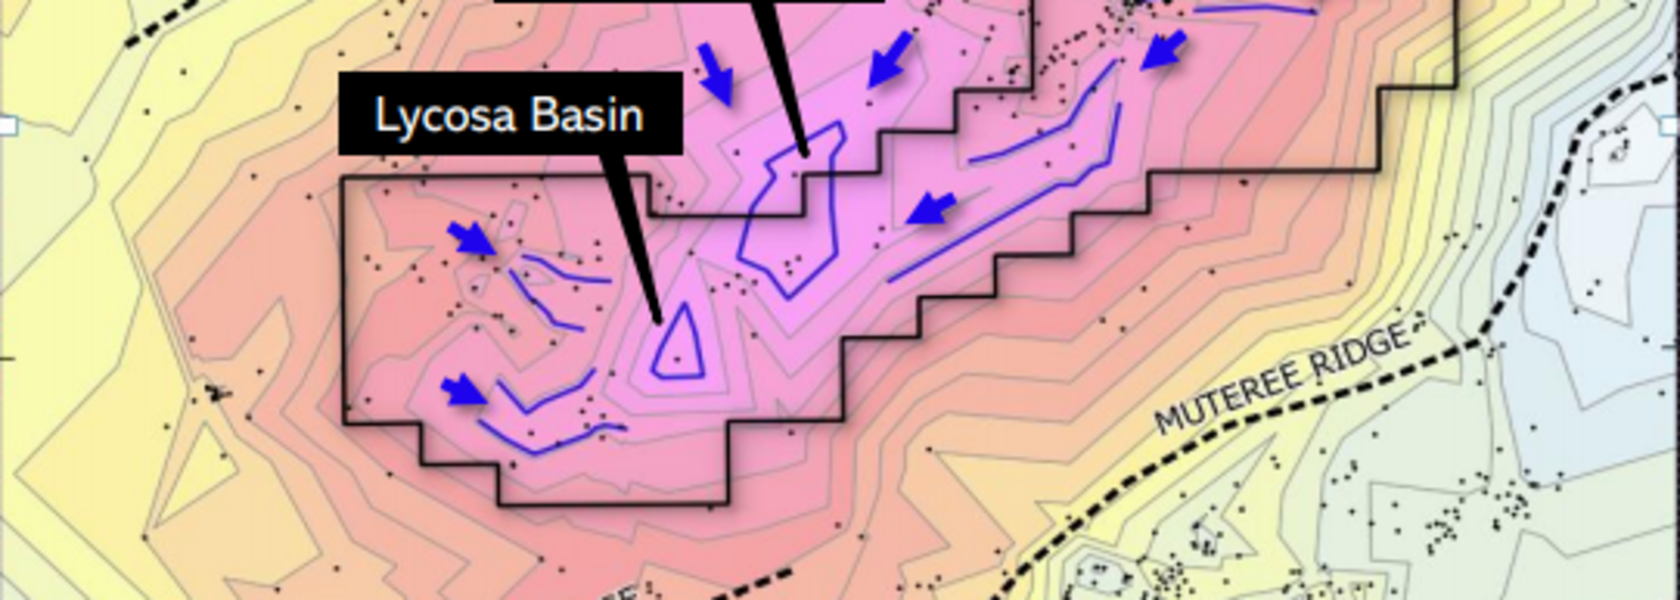 Alligator progressing uranium deal on Moomba field